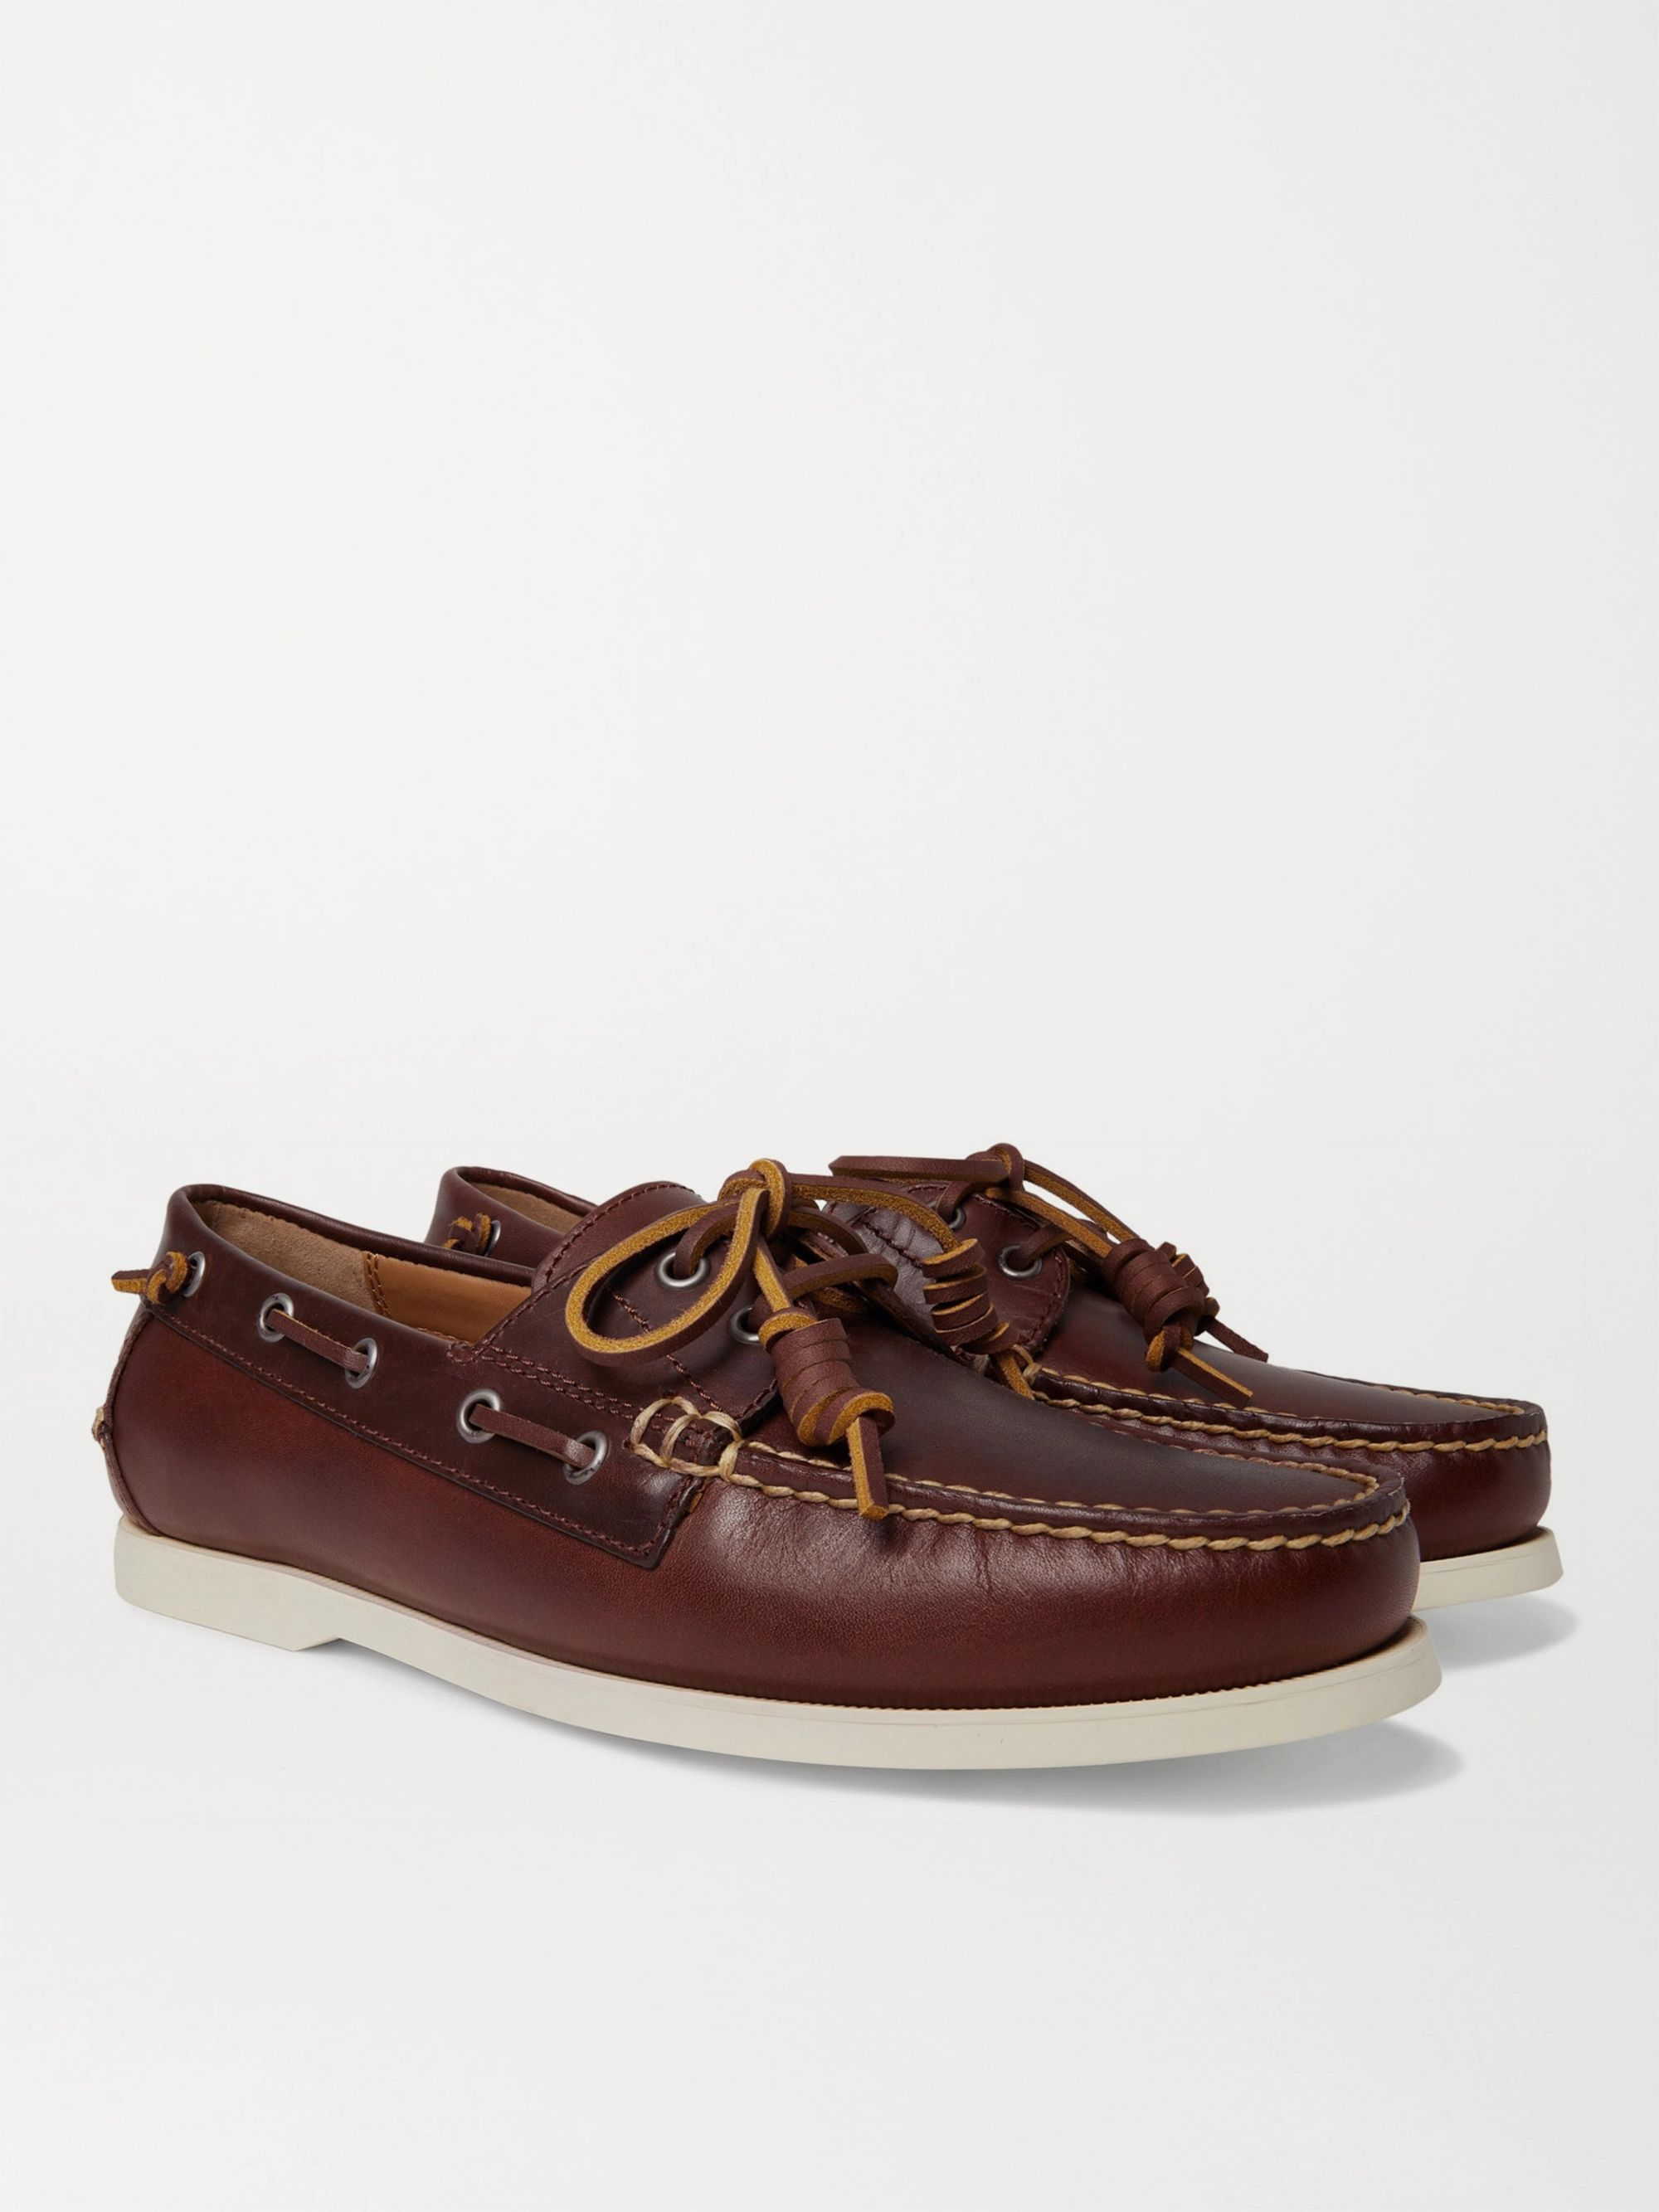 POLO RALPH LAUREN Merton Leather Boat Shoes